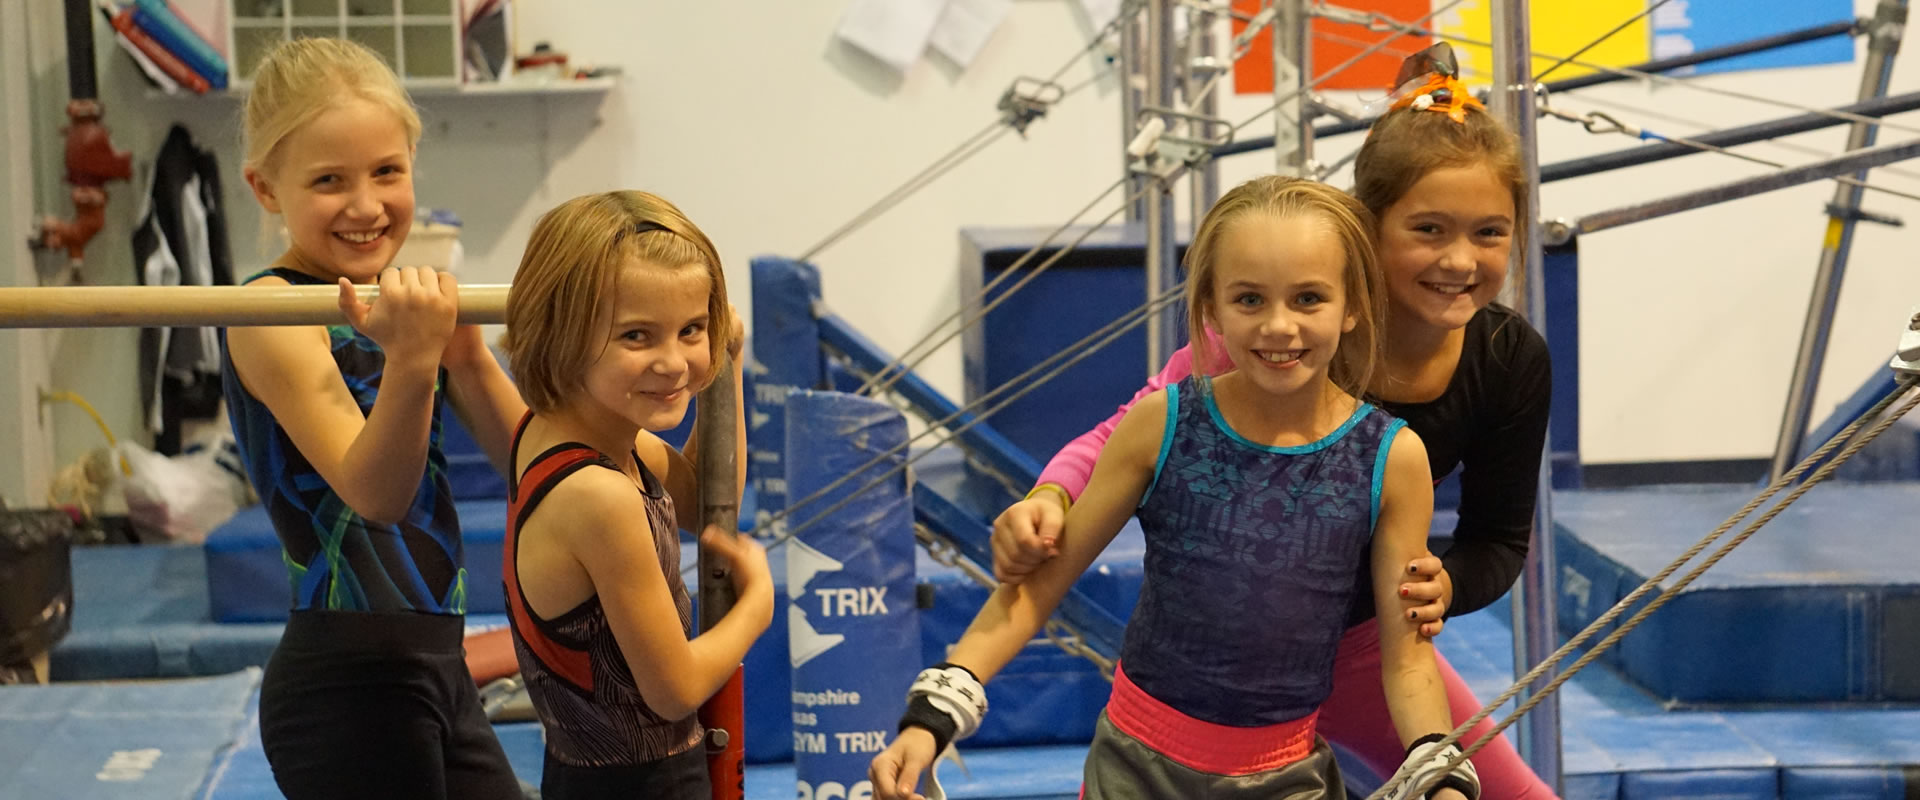 Young gymnasts smile for the camera during practice